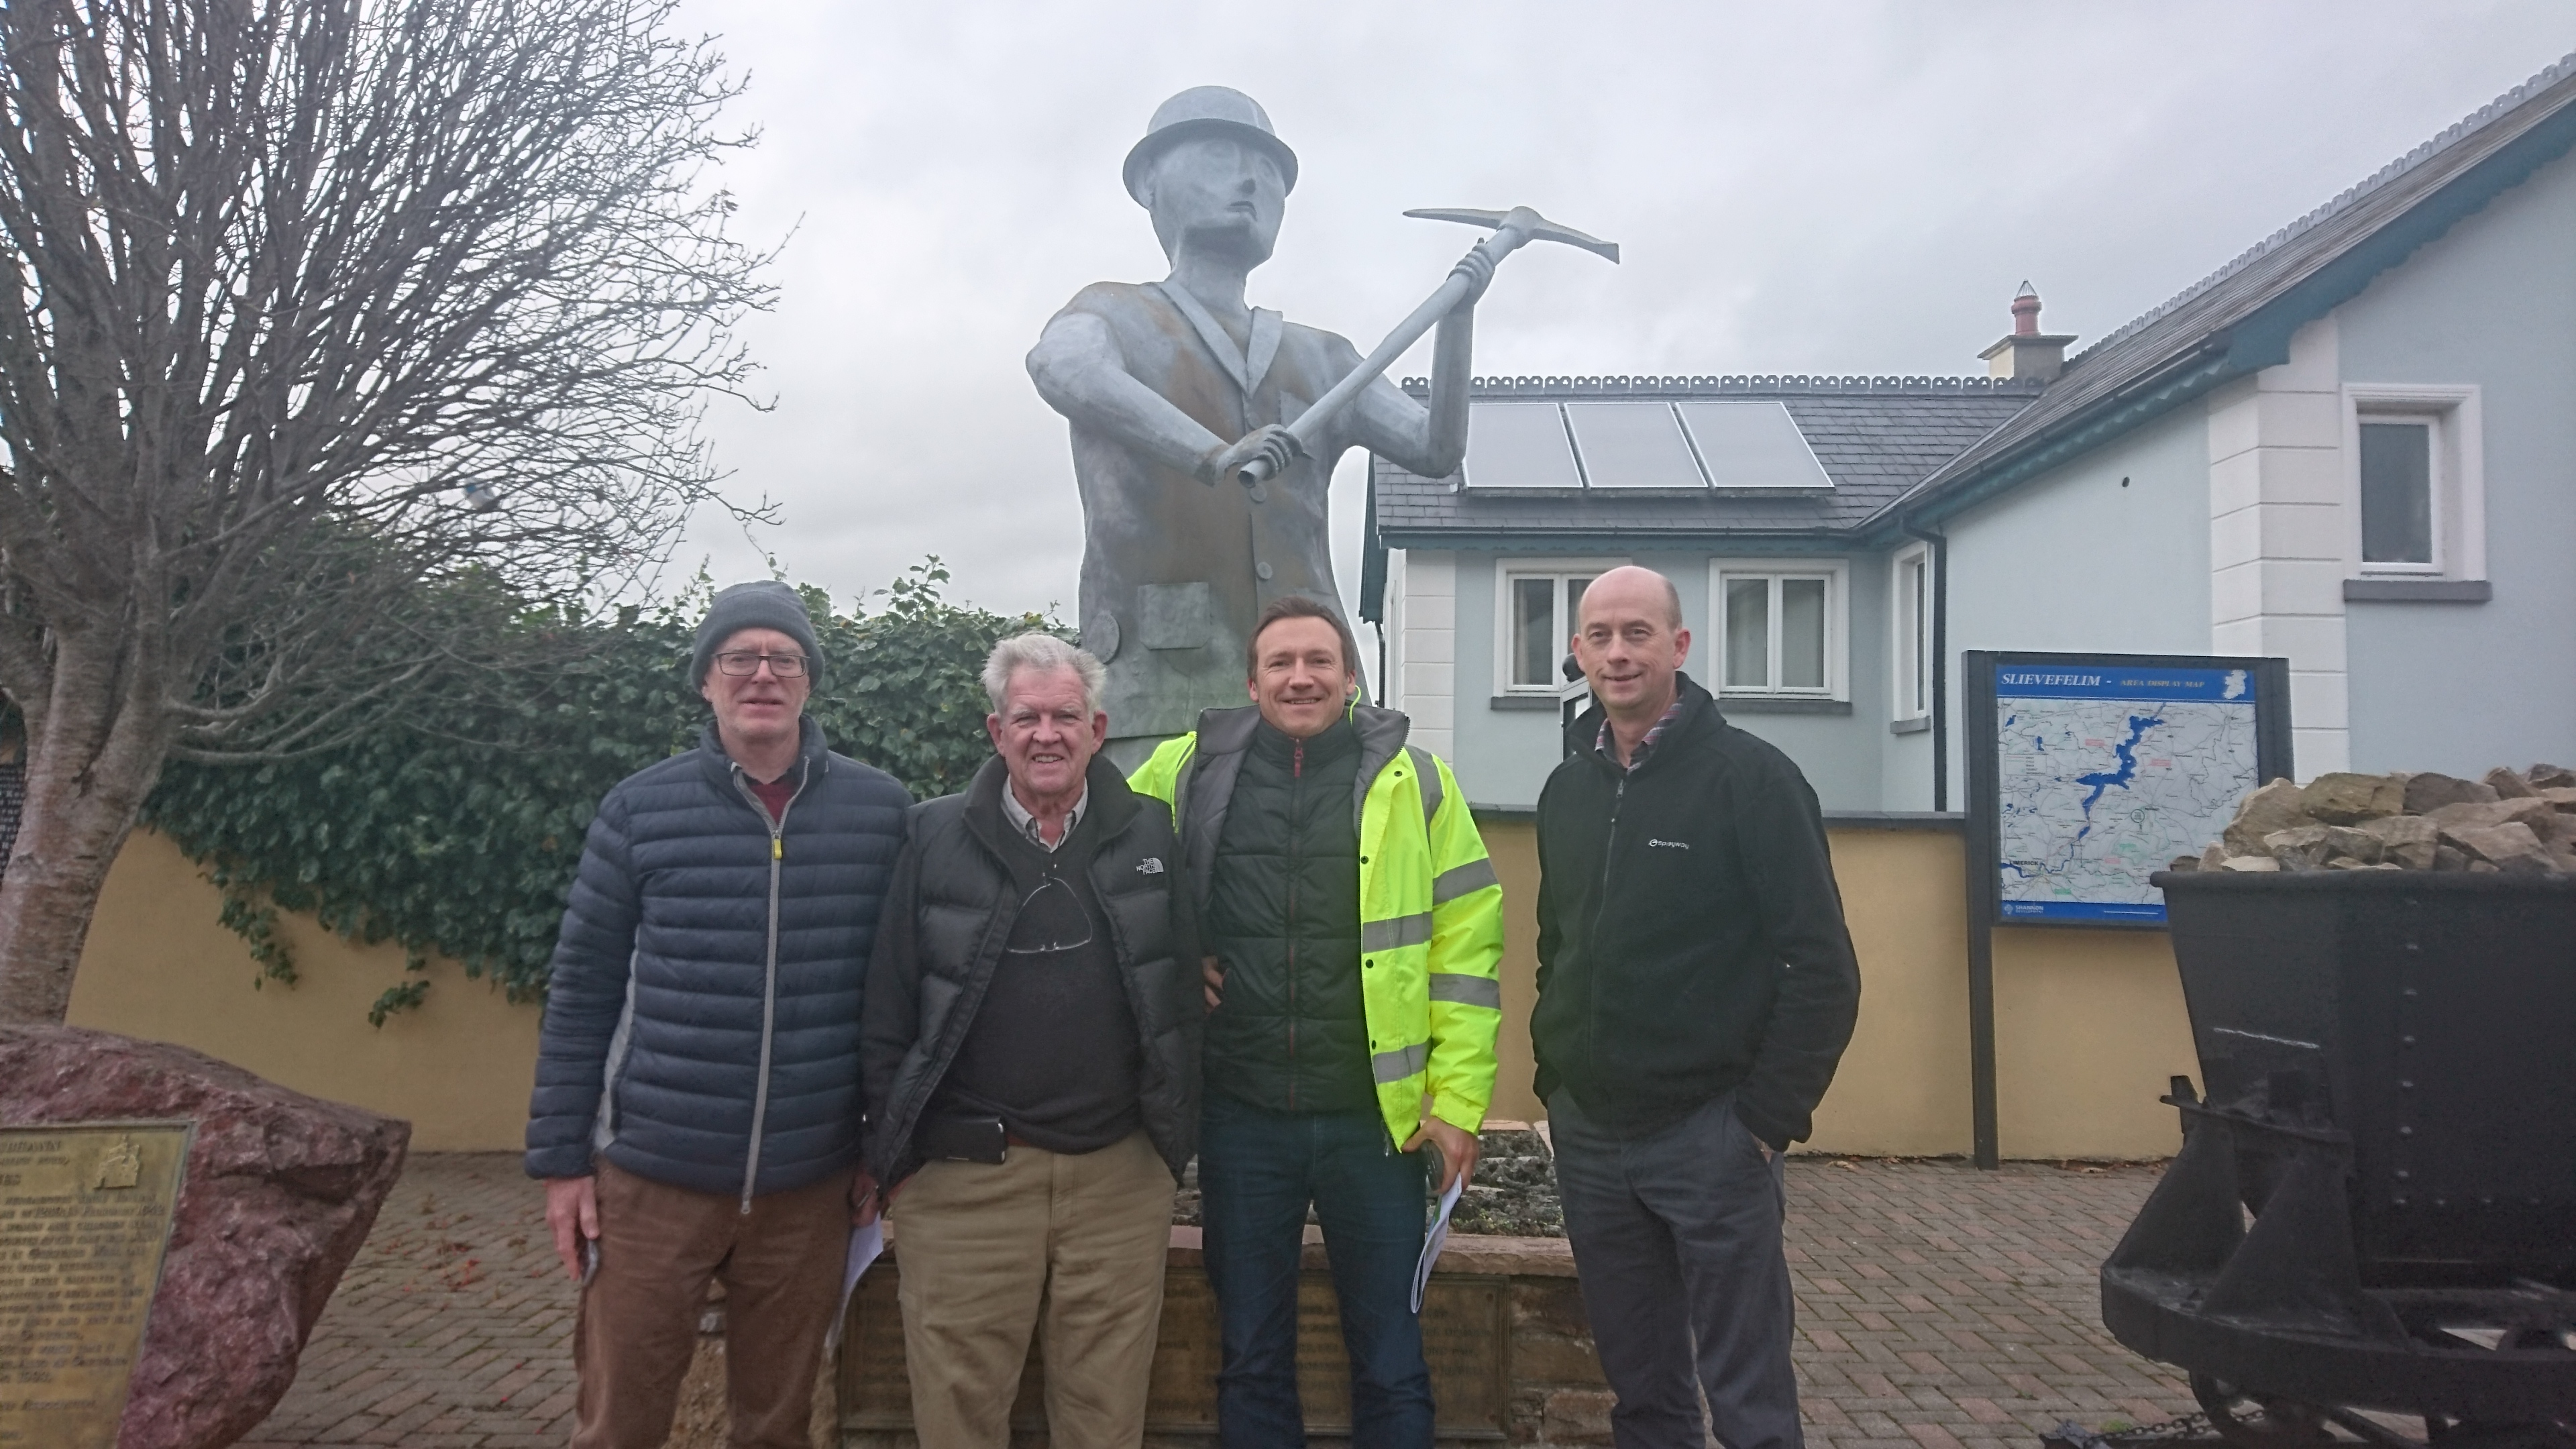 From left to right: Group Eleven vice president of exploration strategy John Barry, writer Bob Moriarty, company CEO Bart Jaworski and company chief operations officer David Furlong pose in front of a statue in the town of Silvermines while on a site visit to Ireland. Photo by Richard Quarisa.